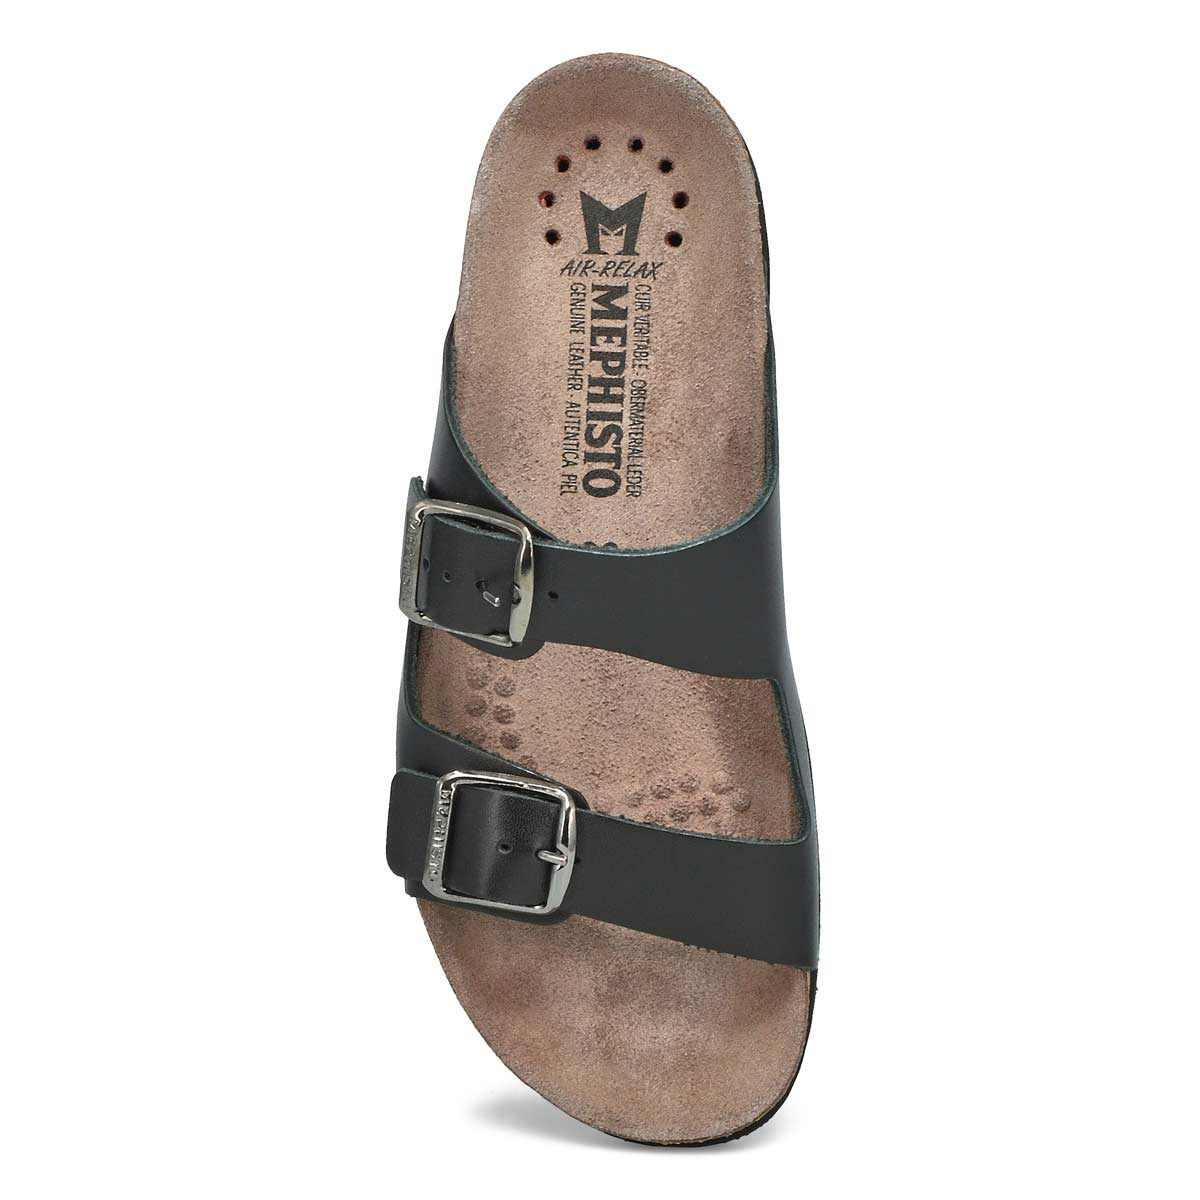 Lds Harmony black cork footbed slide